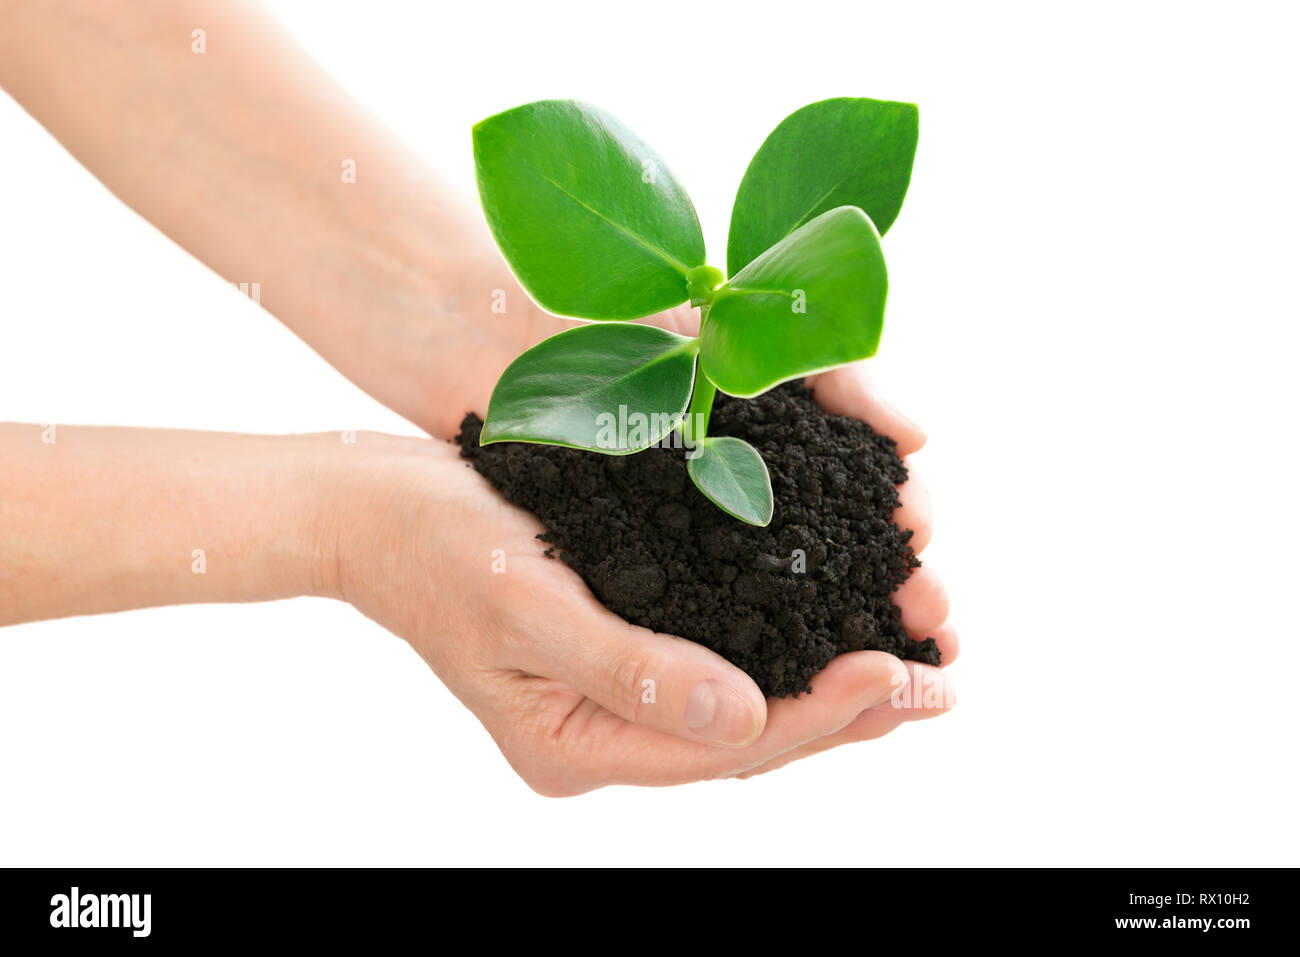 Hands holding green plant ecology concept - Stock Image